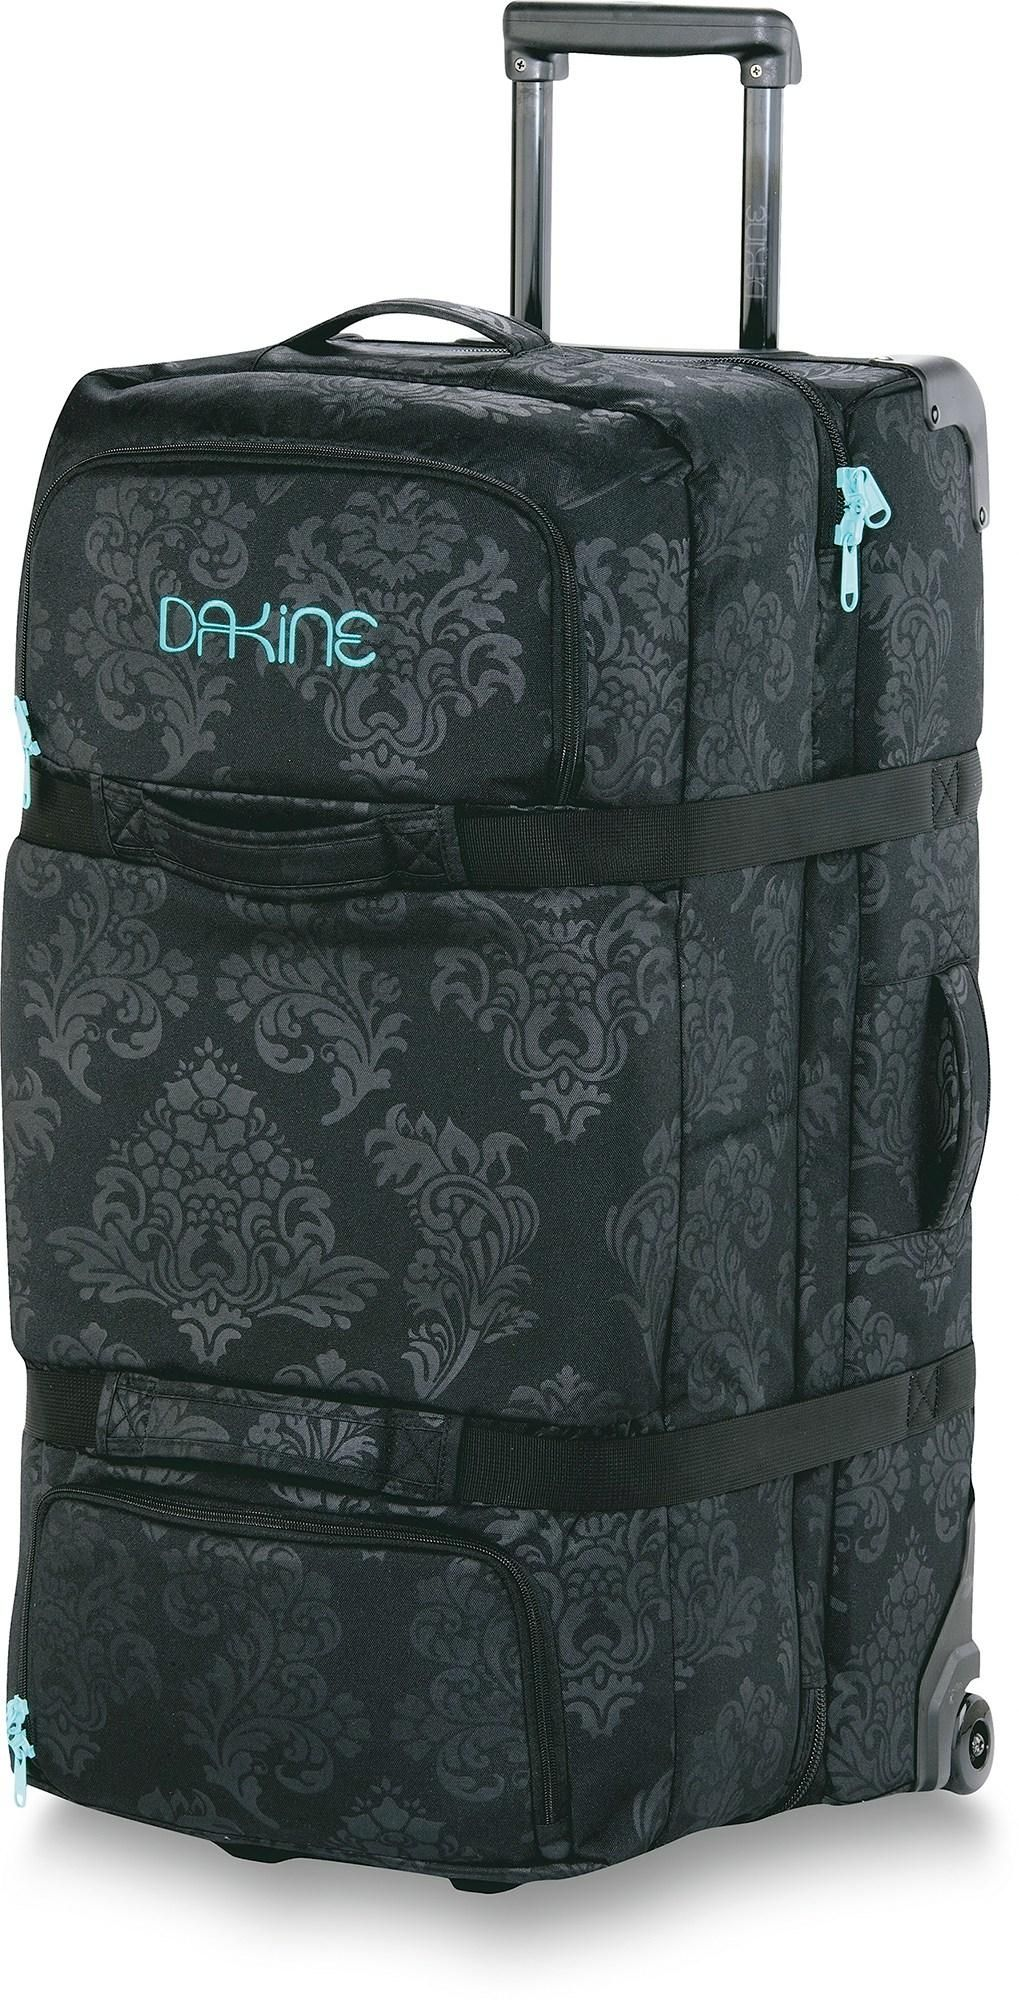 At Rei Outlet Dakine Split Roller Wheeled Bag Snowy